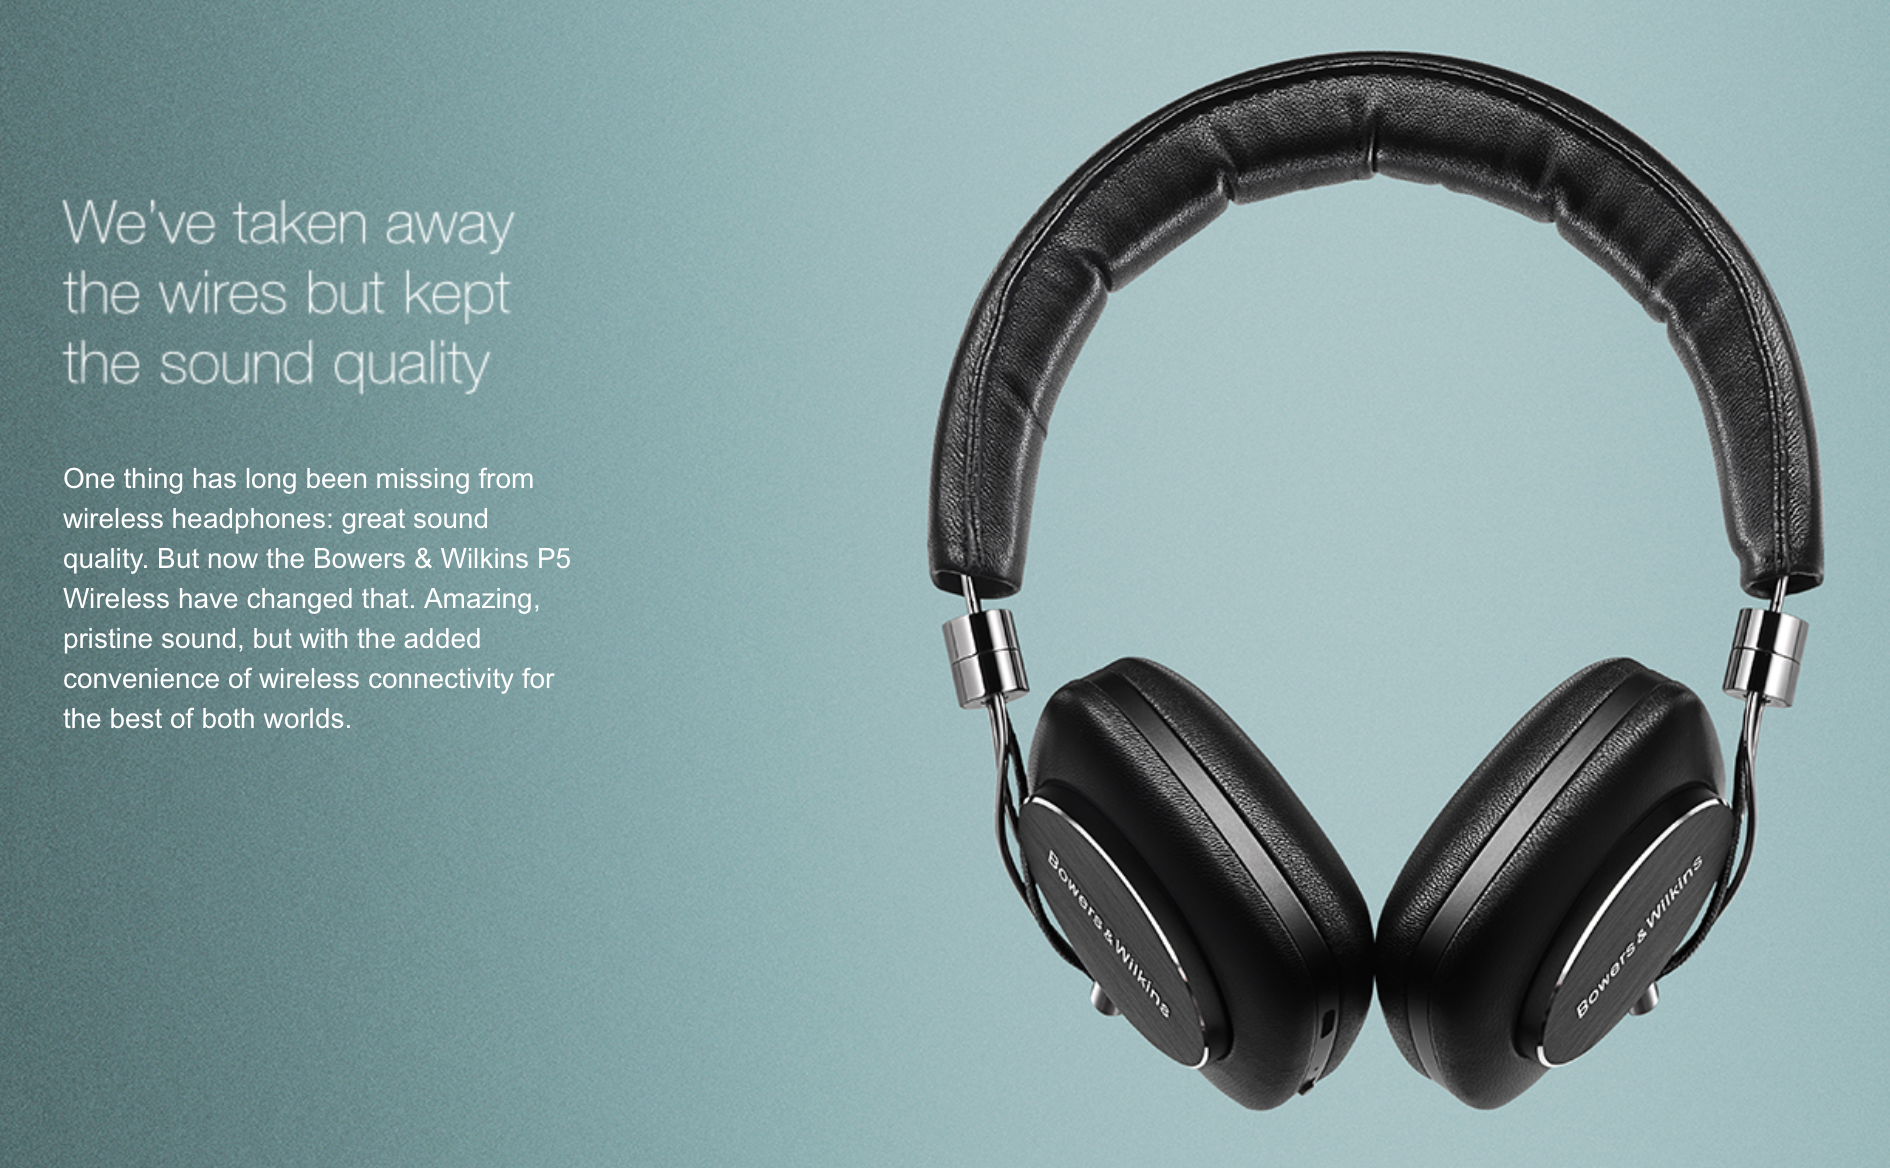 Bowers & Wilkins P5 Wireless | Headphone Reviews and Discussion ...